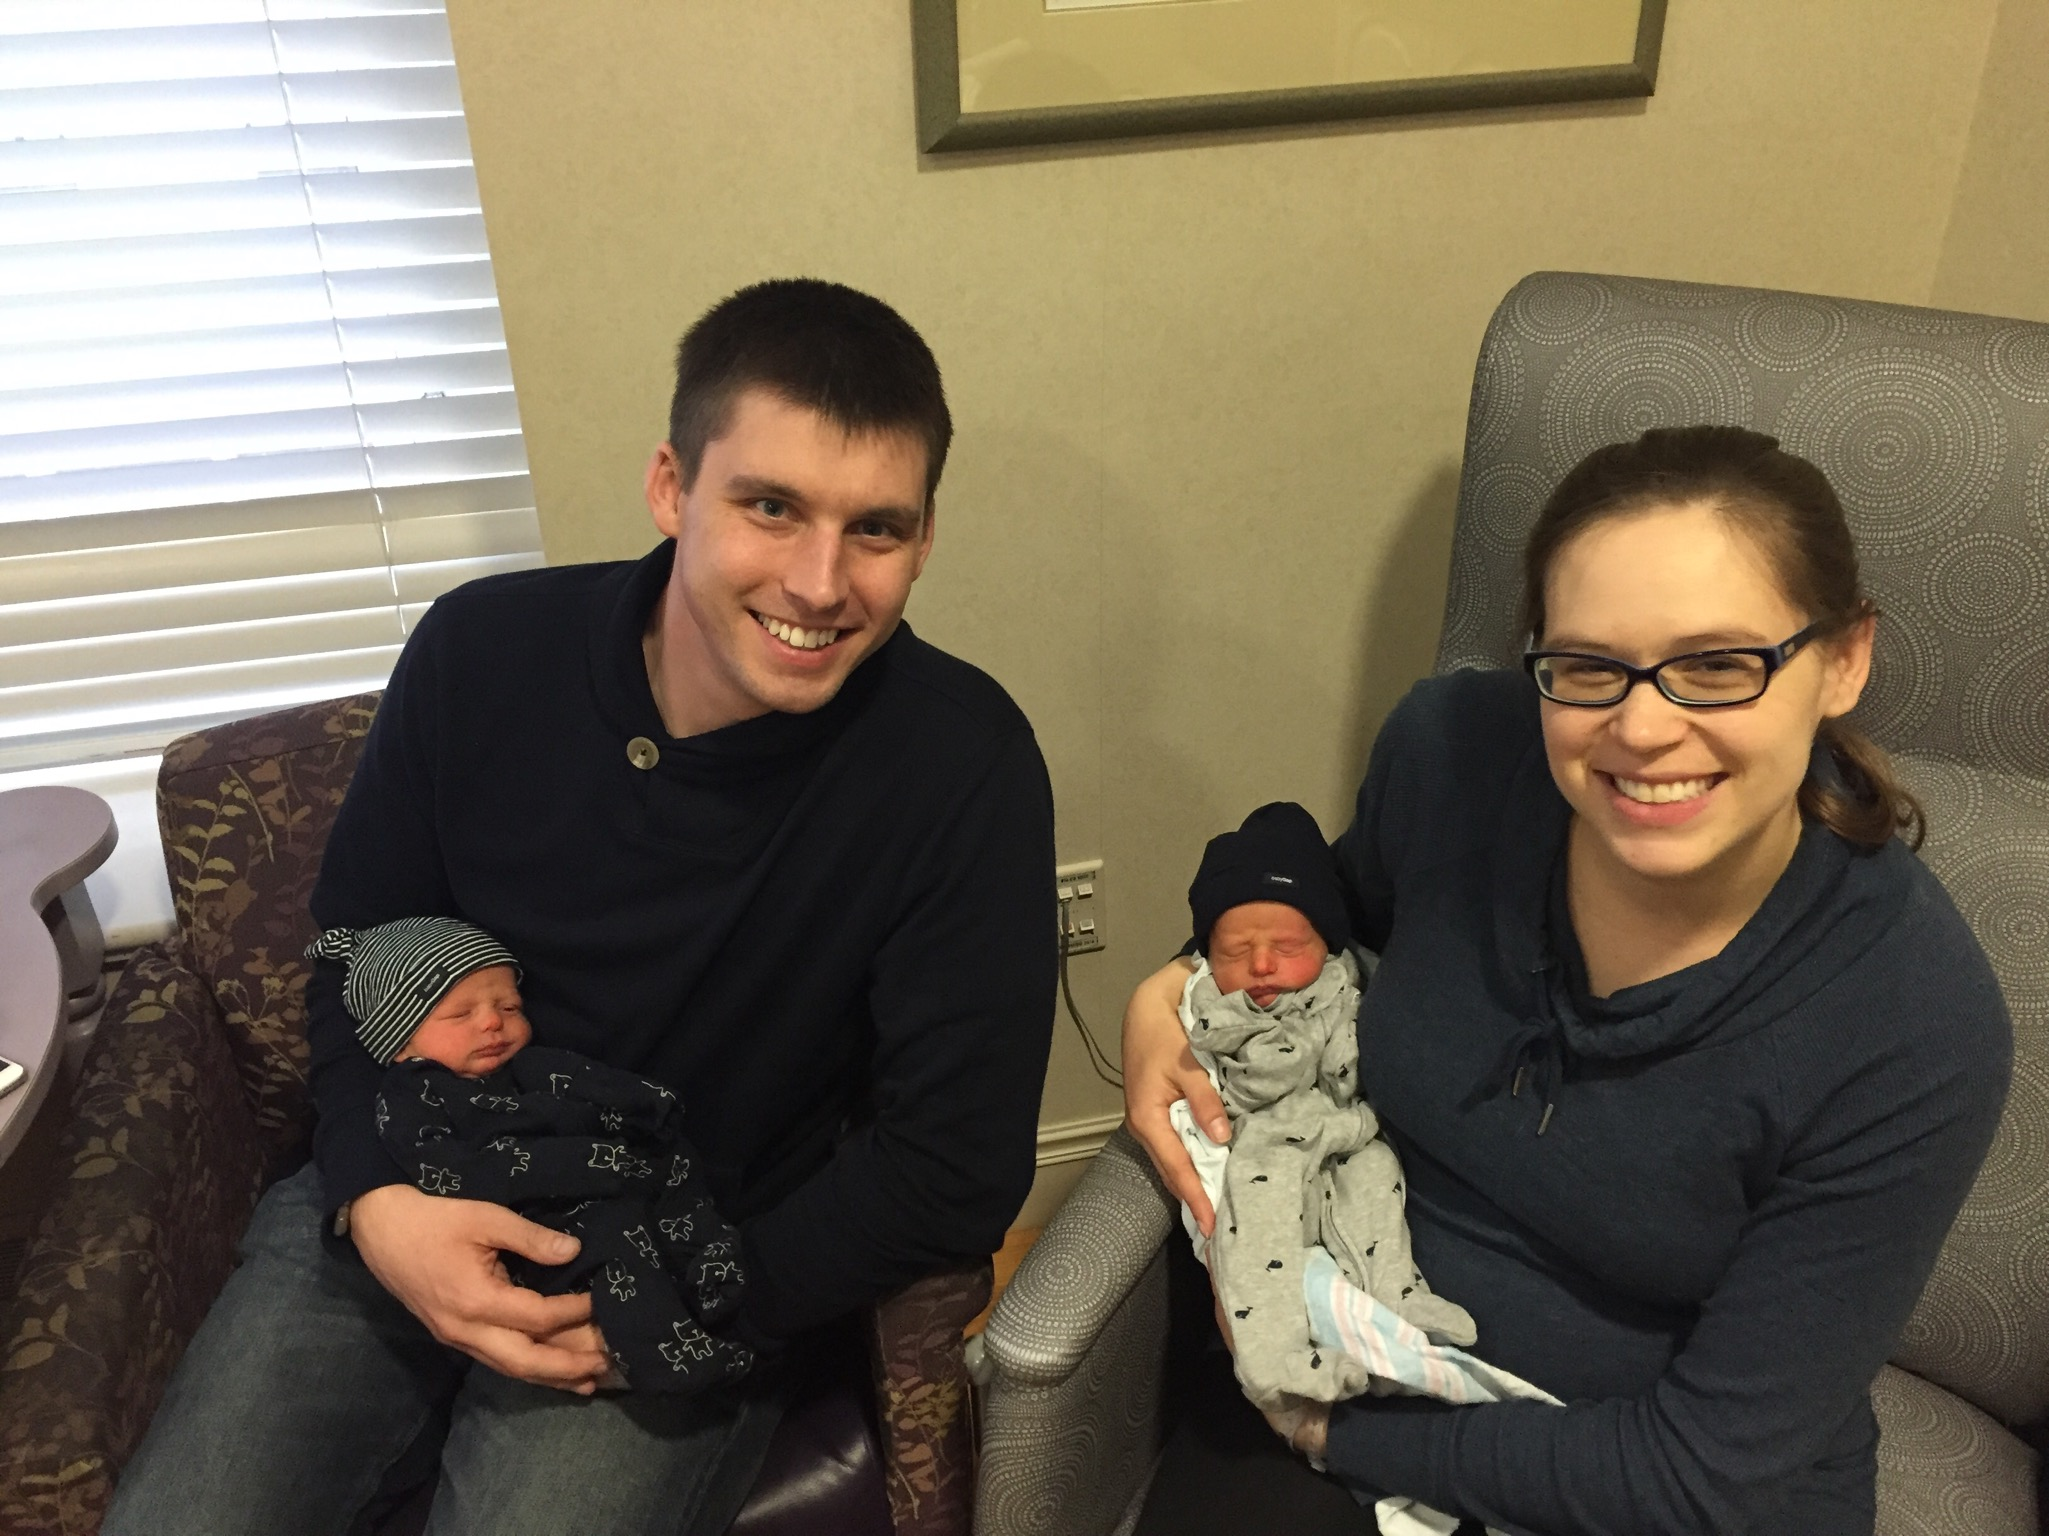 Family picture before being discharged Sunday 3/27/16 - 4 days old